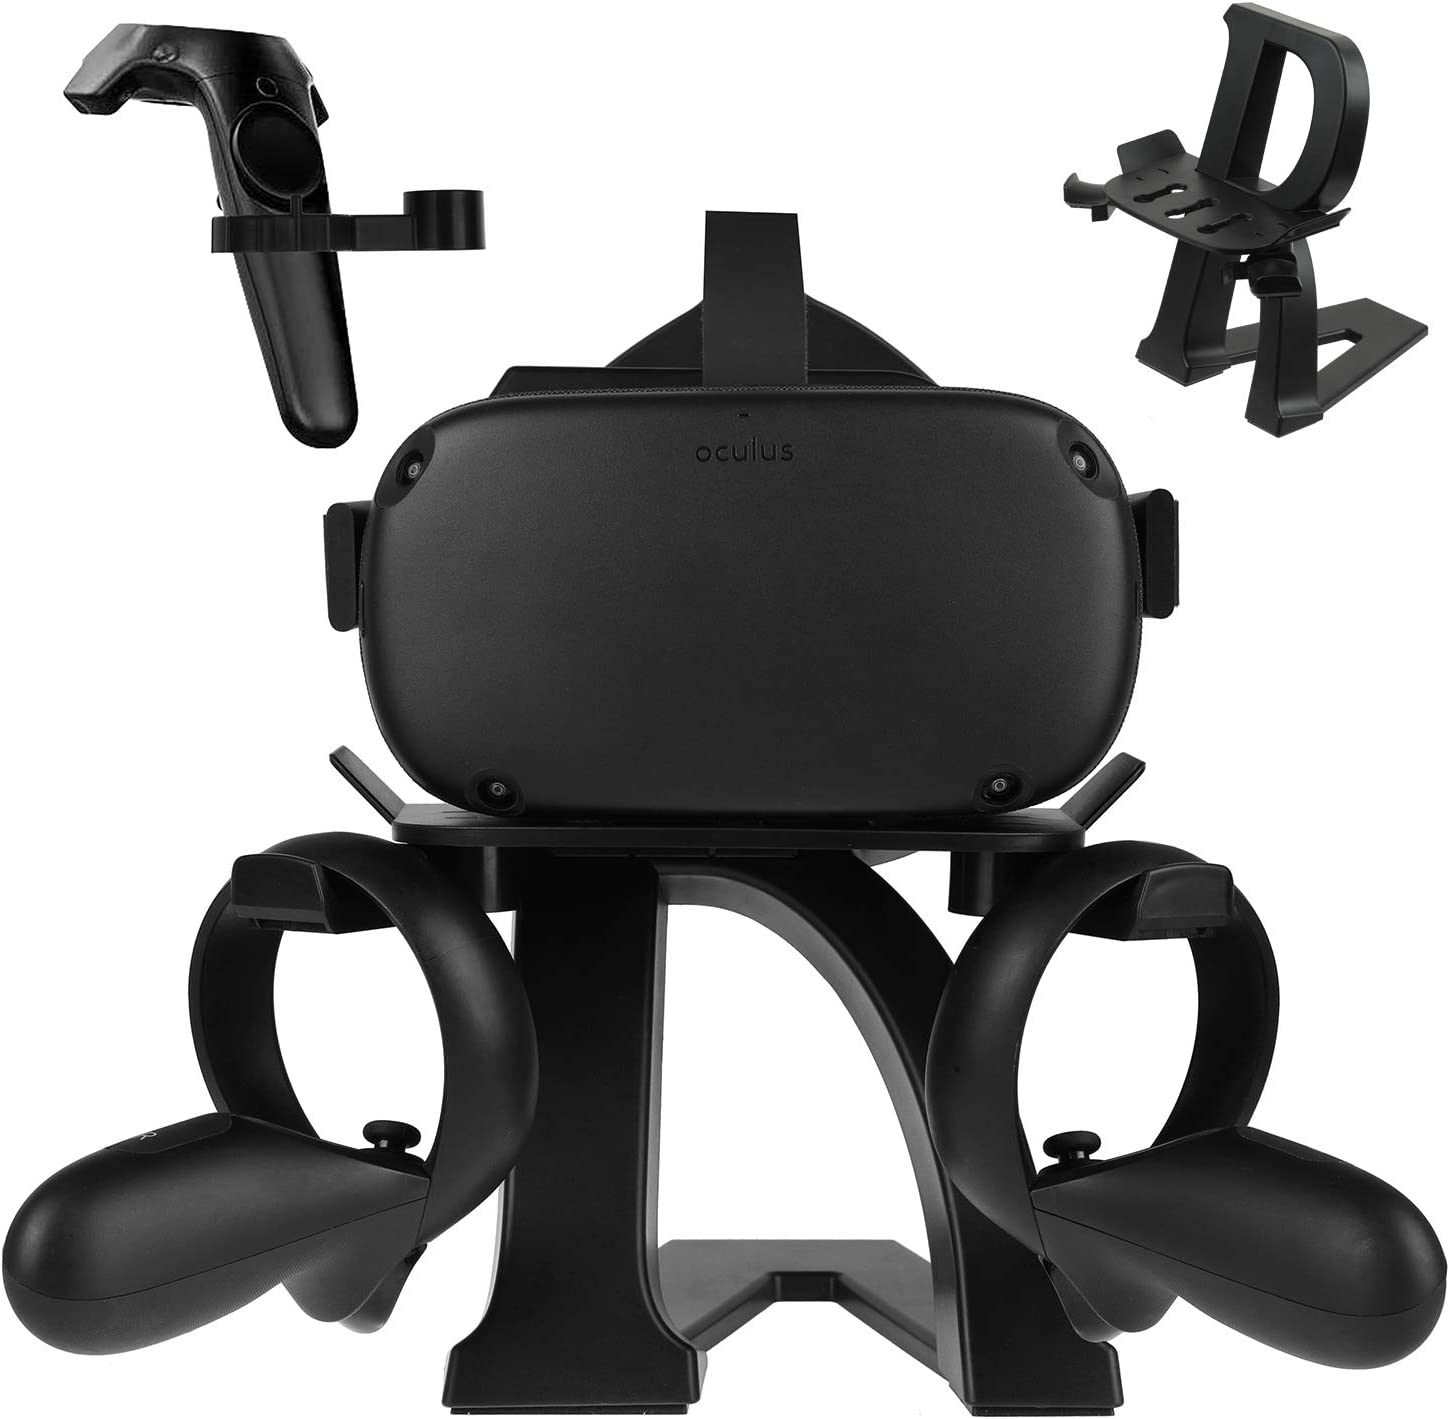 New Upgrade VR Letter Modeling Stand for Oculus Rift S, Headset Display Holder and Controller Holder Mount Station for Oculus Quest/HTC Vive Pro/Valve Index VR Headset and Touch Controllers